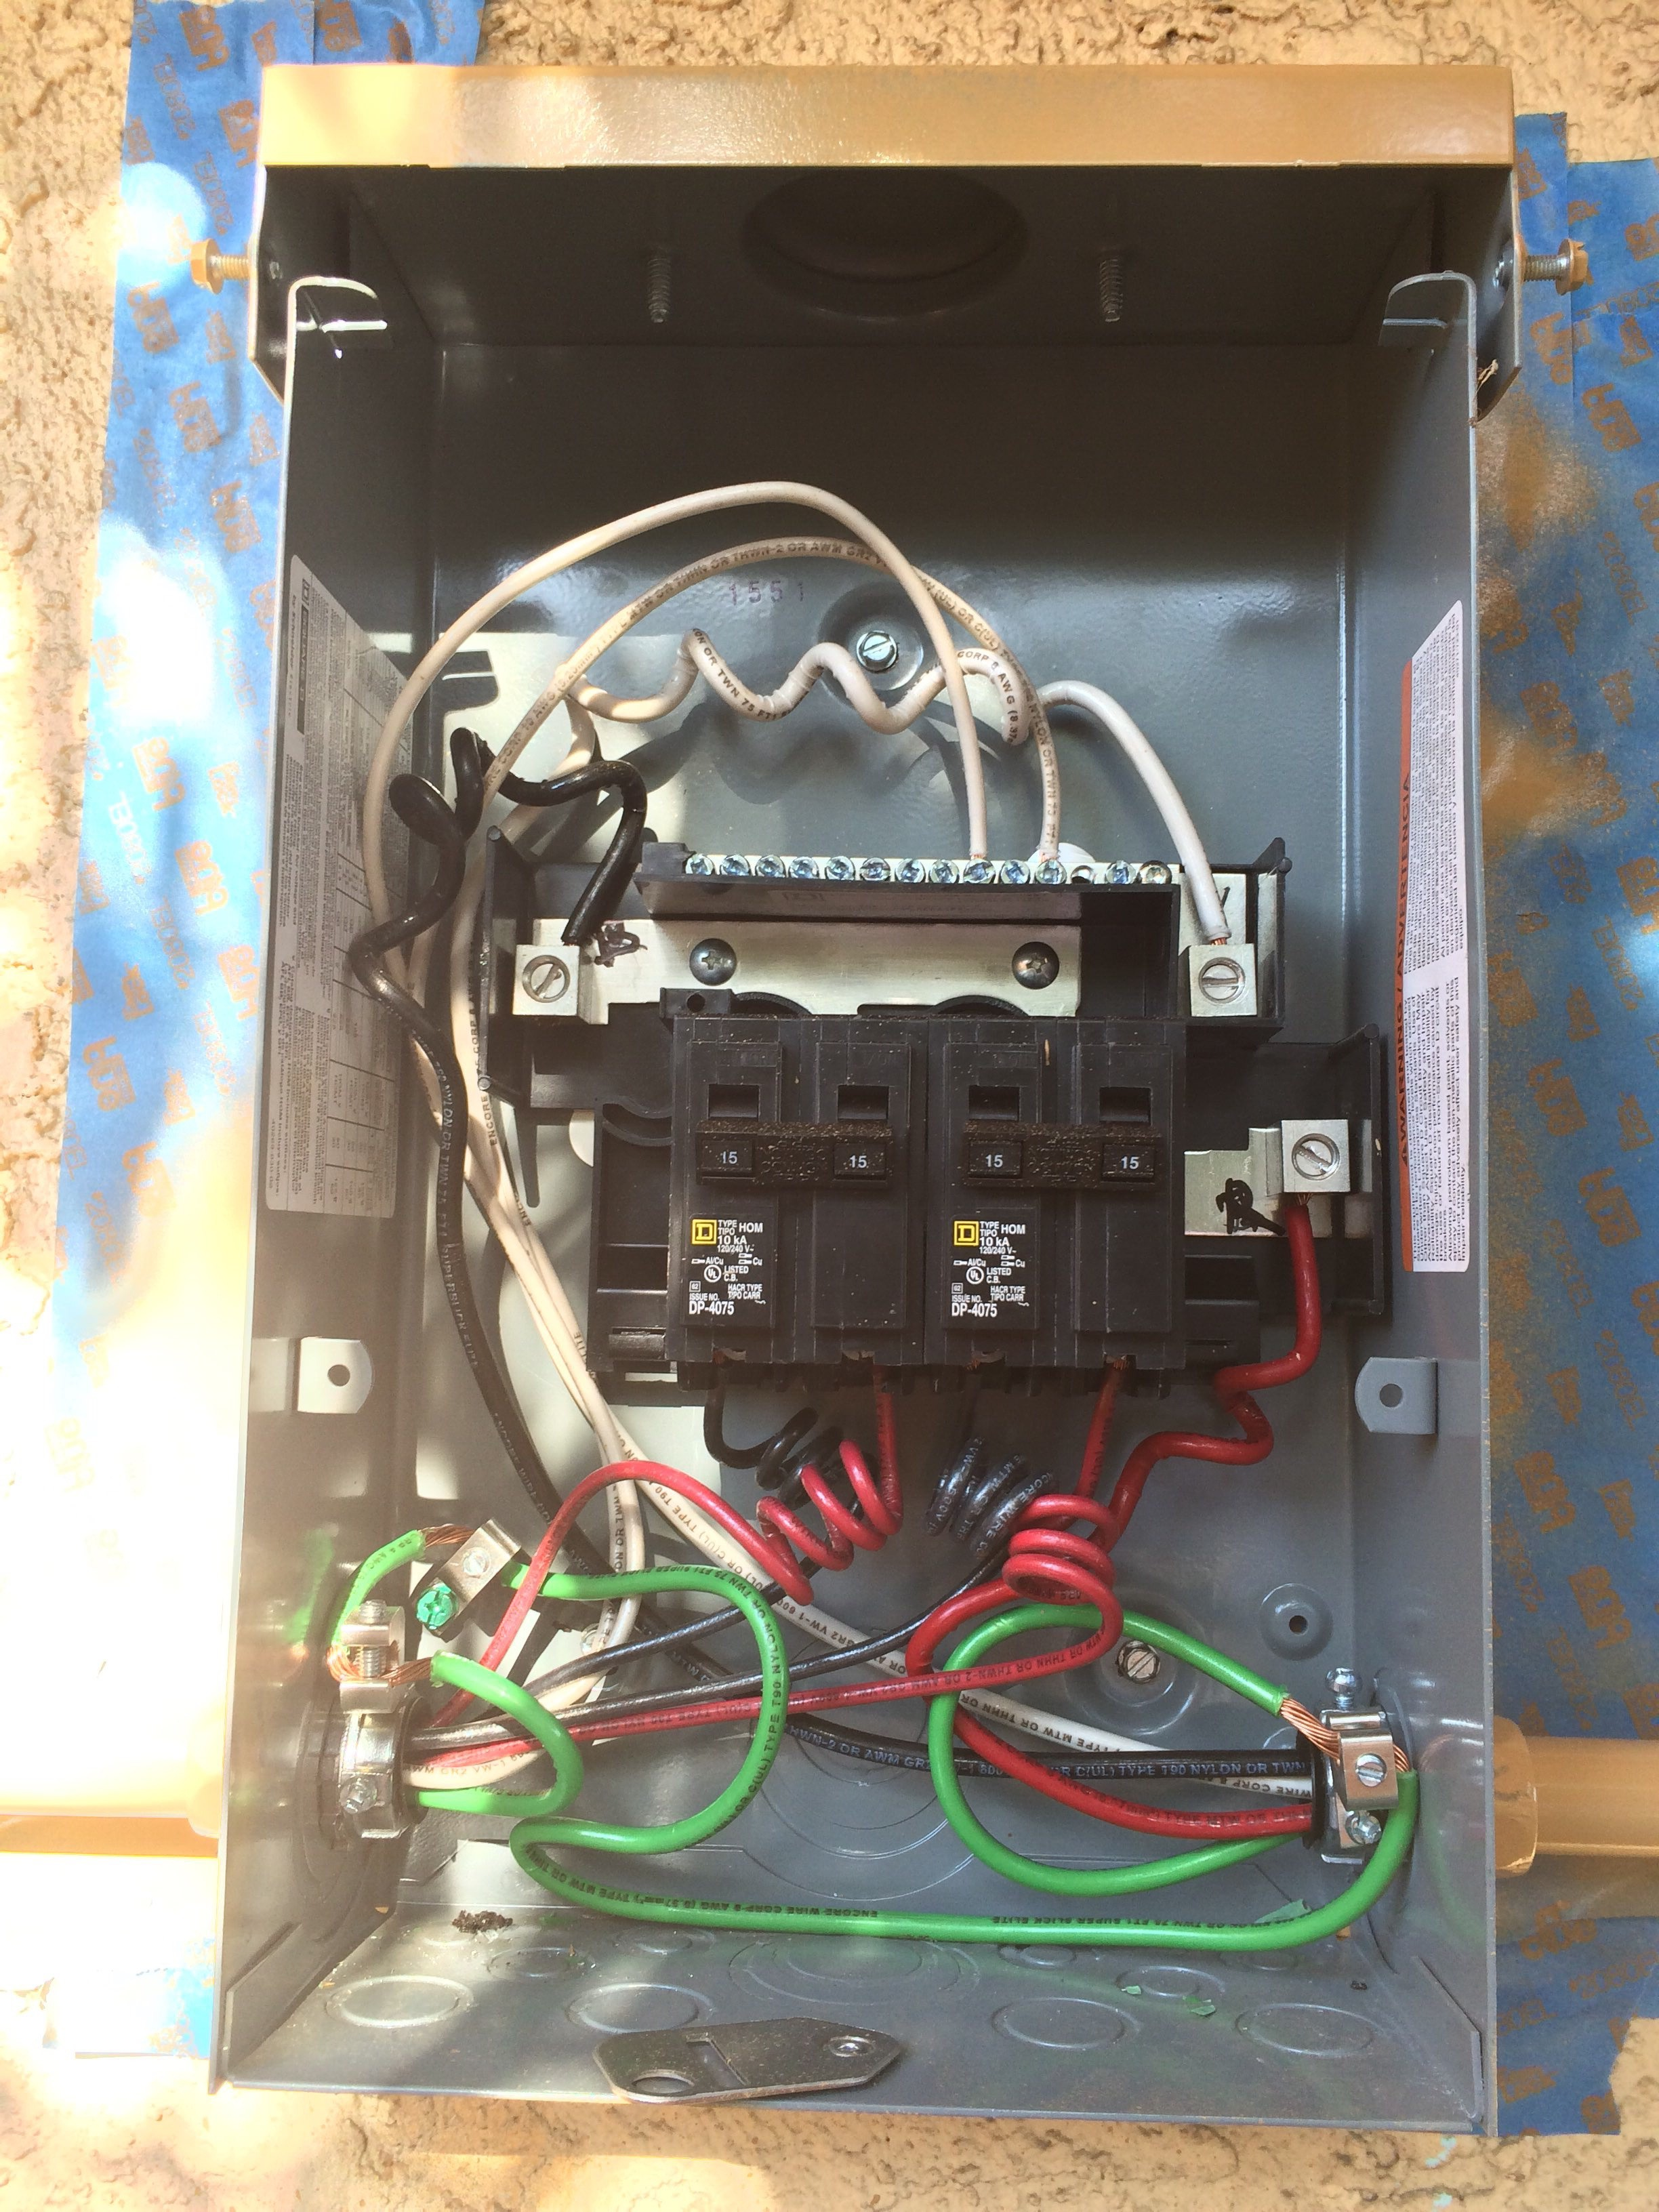 load center / combiner box